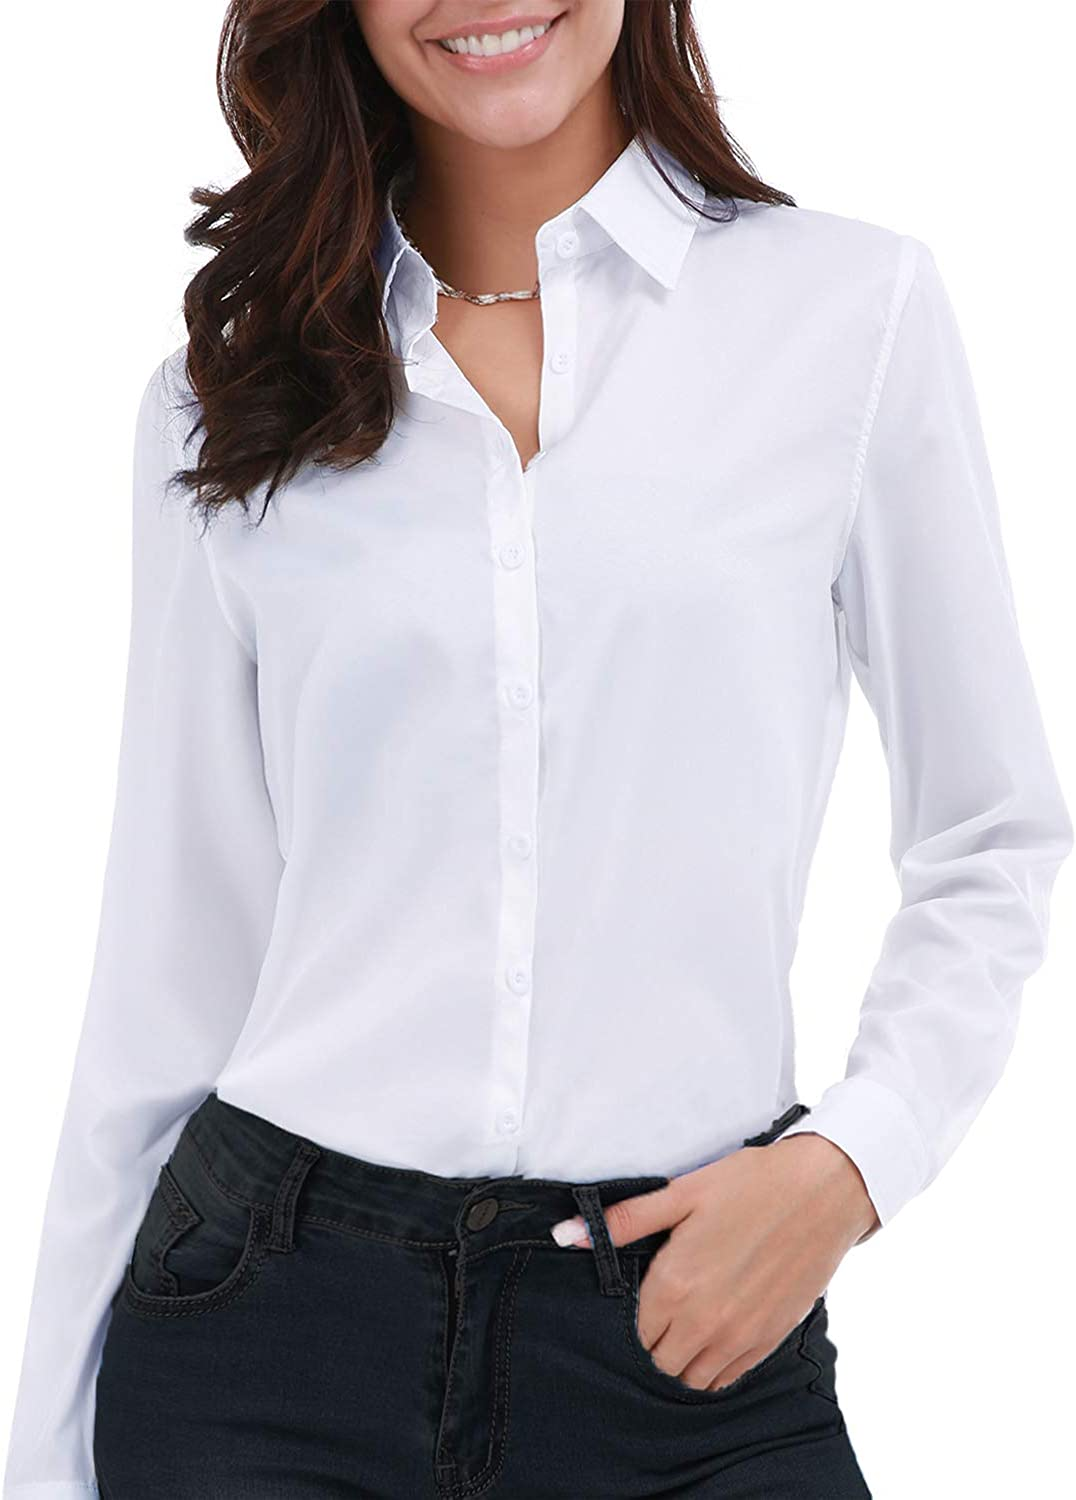 Gemolly Women's Basic Button Down Shirts Long Sleeve Plus Size Simple Cotton Stretch Formal Casual Shirt Blouse